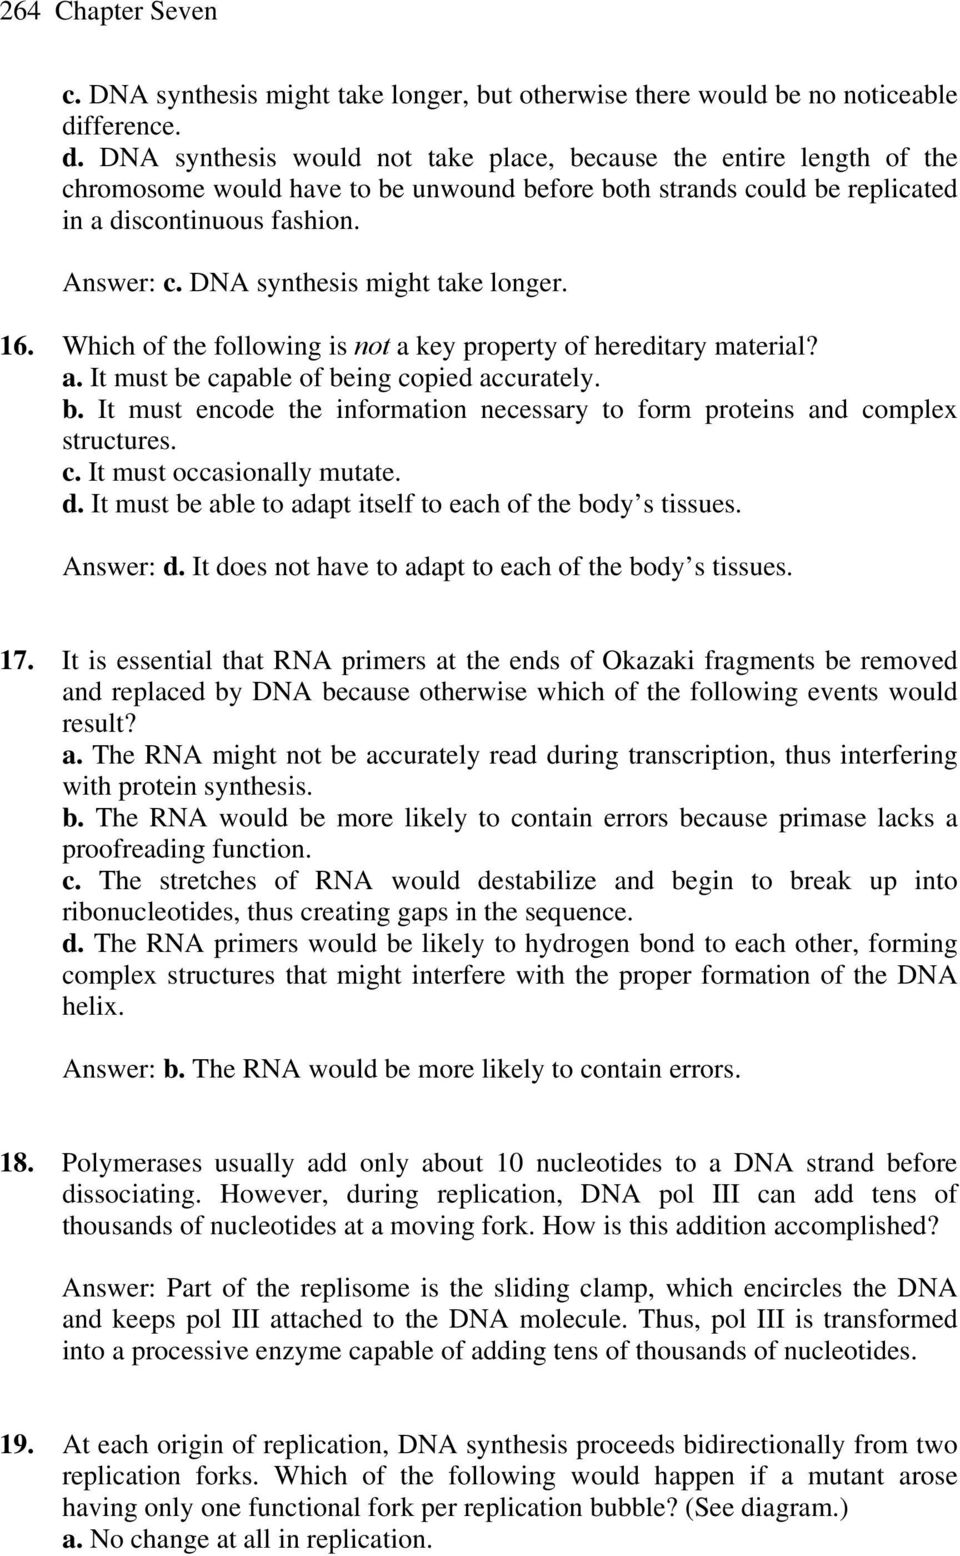 worksheet. Dna And Rna Worksheet Answers. Grass Fedjp Worksheet ...